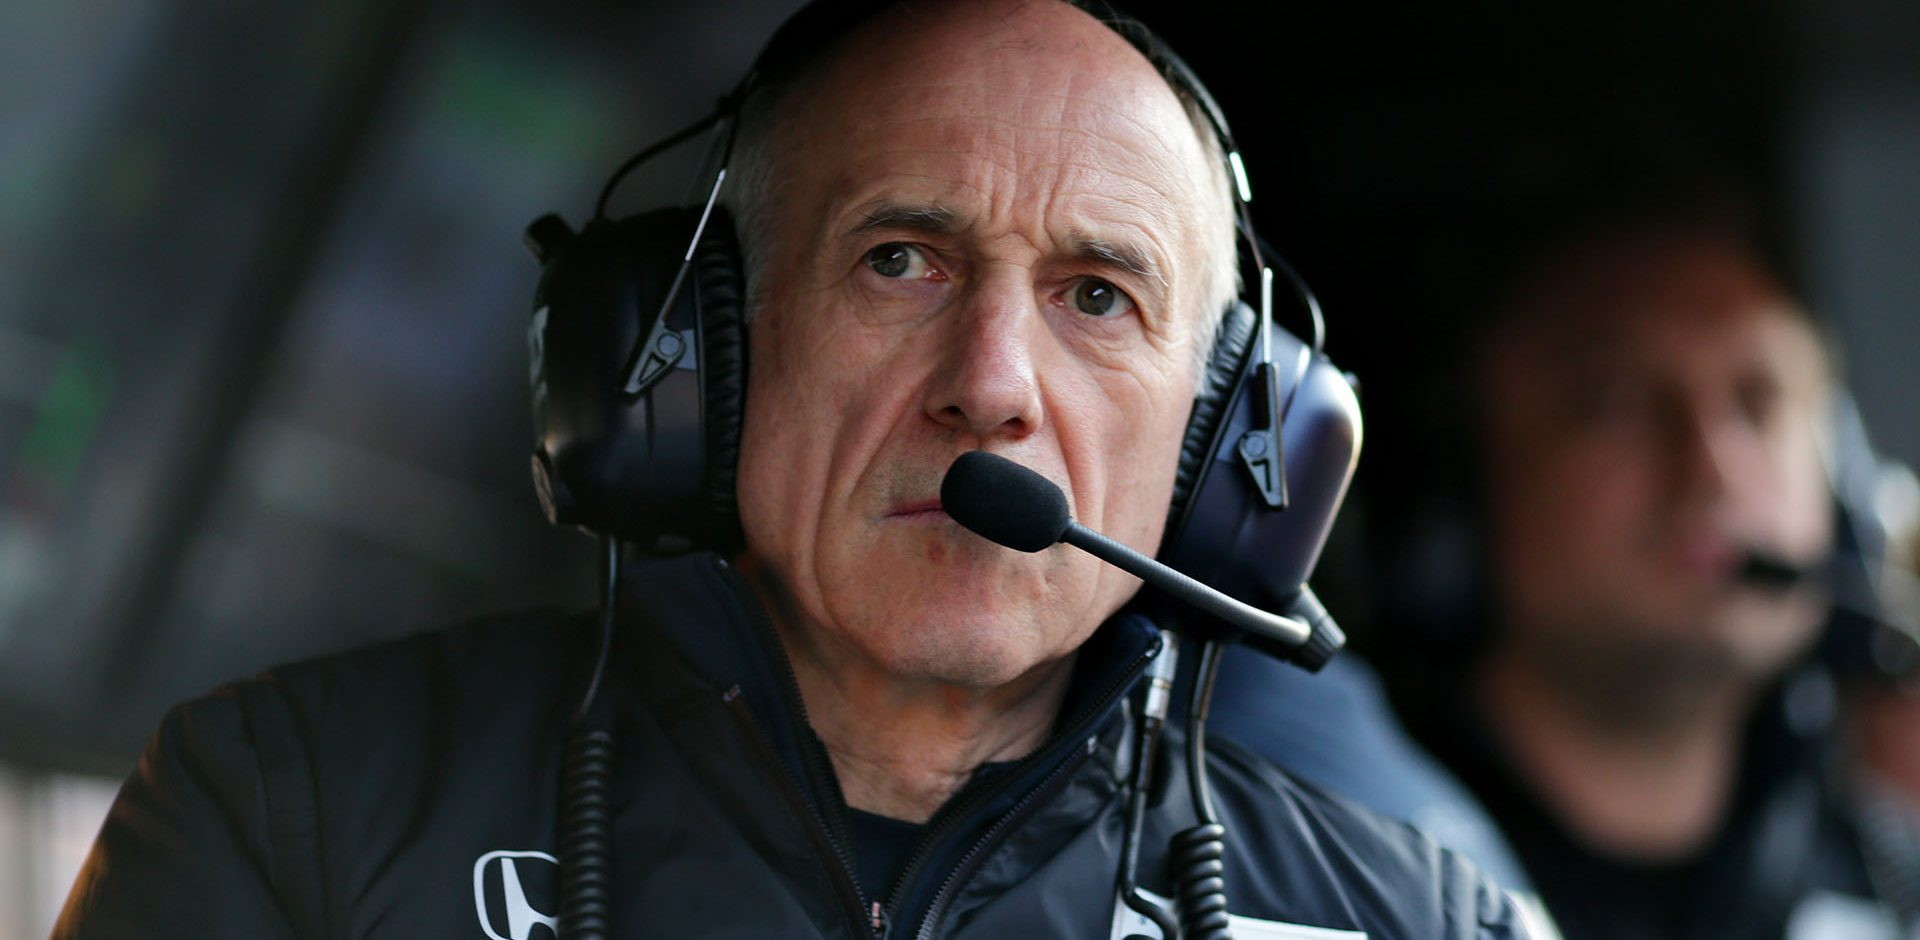 BARCELONA, SPAIN - FEBRUARY 20: Scuderia AlphaTauri Team Principal Franz Tost looks on from the pitwall during day two of F1 Winter Testing at Circuit de Barcelona-Catalunya on February 20, 2020 in Barcelona, Spain. (Photo by Peter Fox/Getty Images)